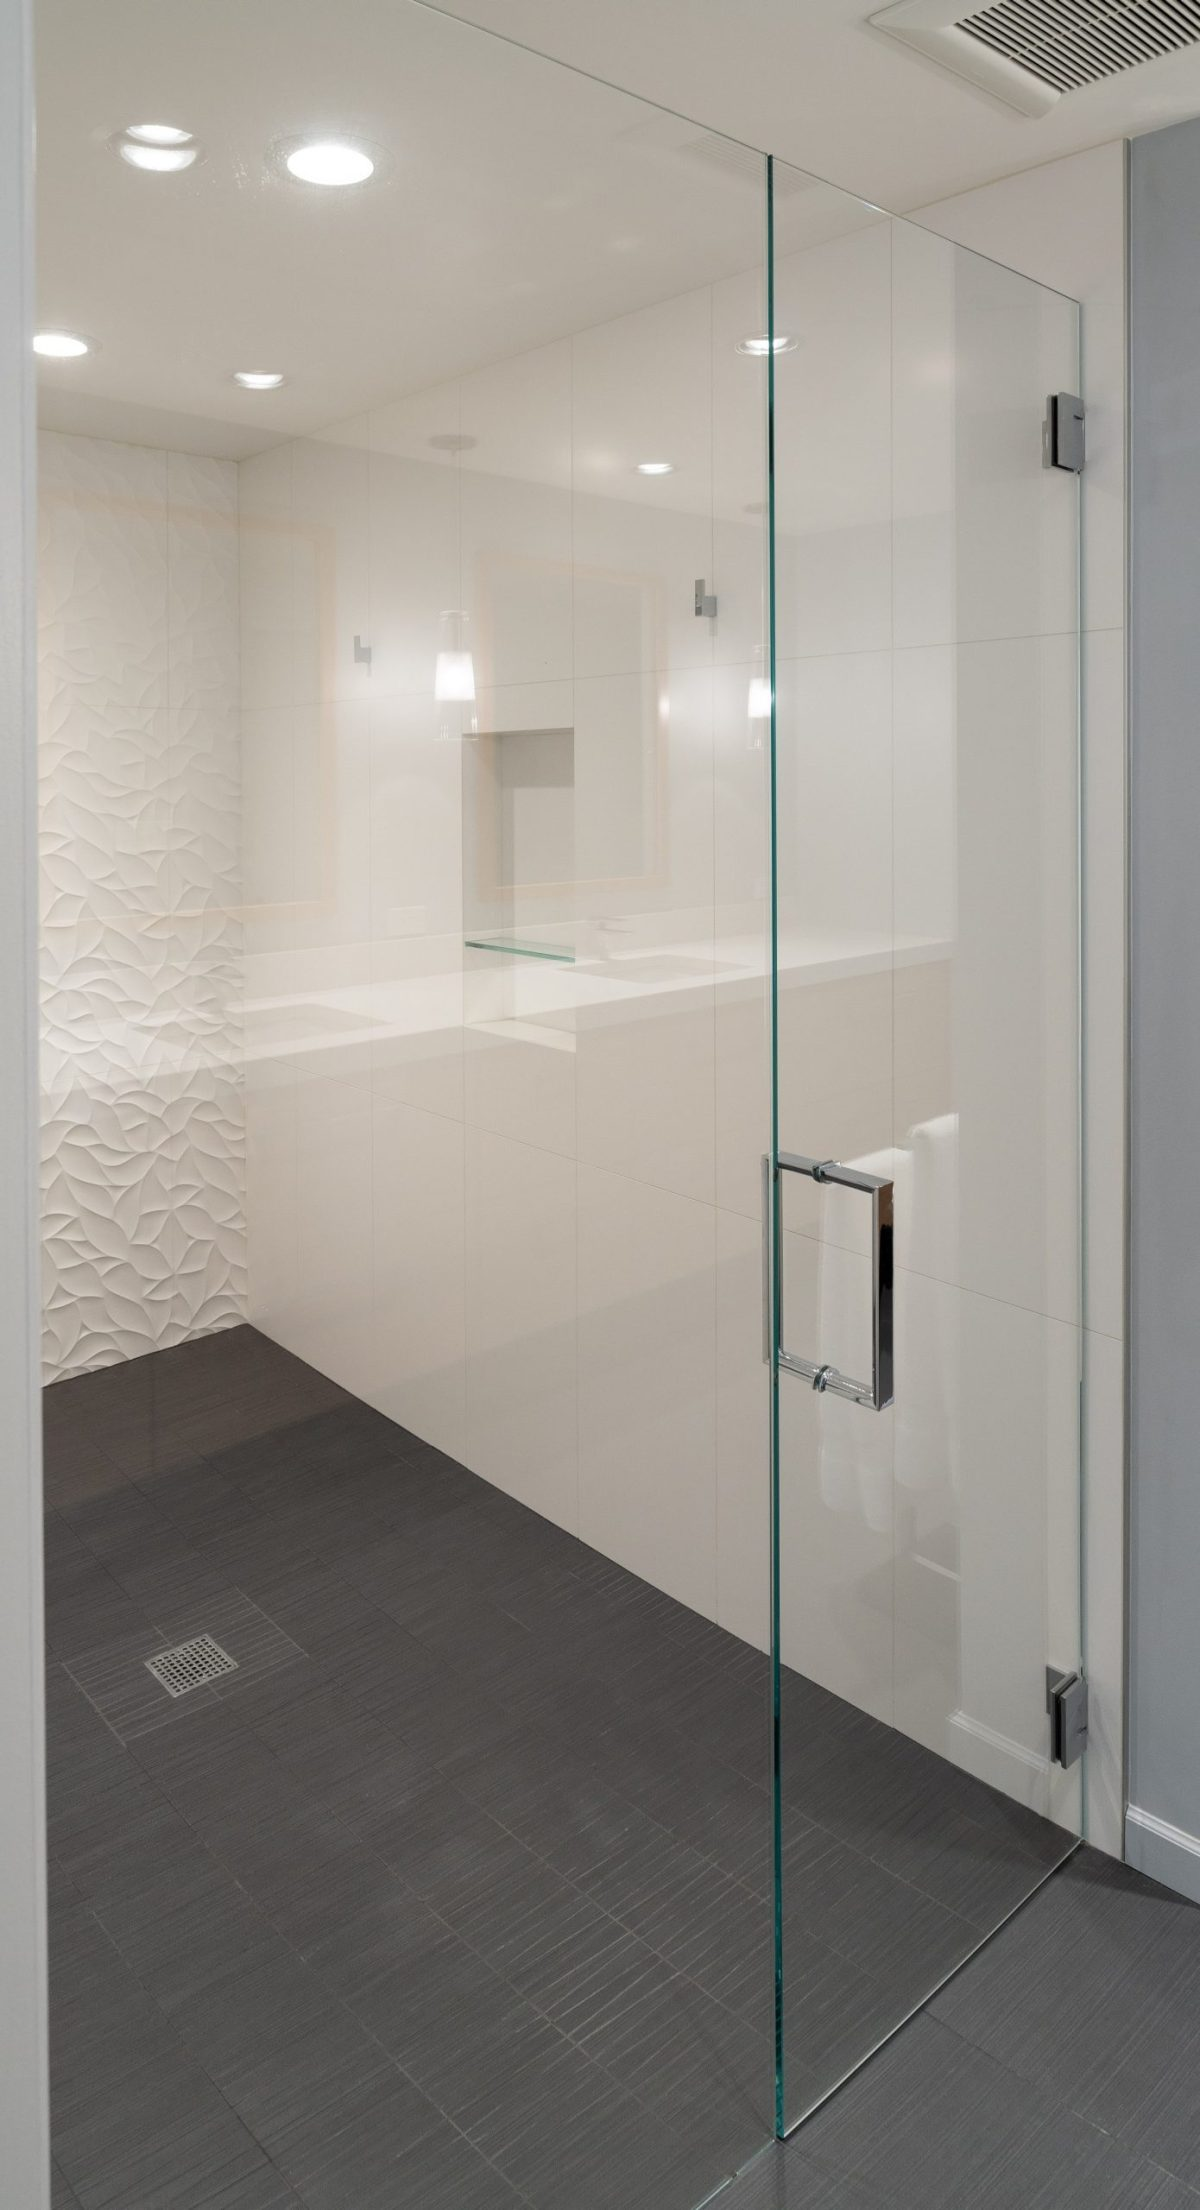 glass wall & door shower enclosure with white tile walls and grey floor tile